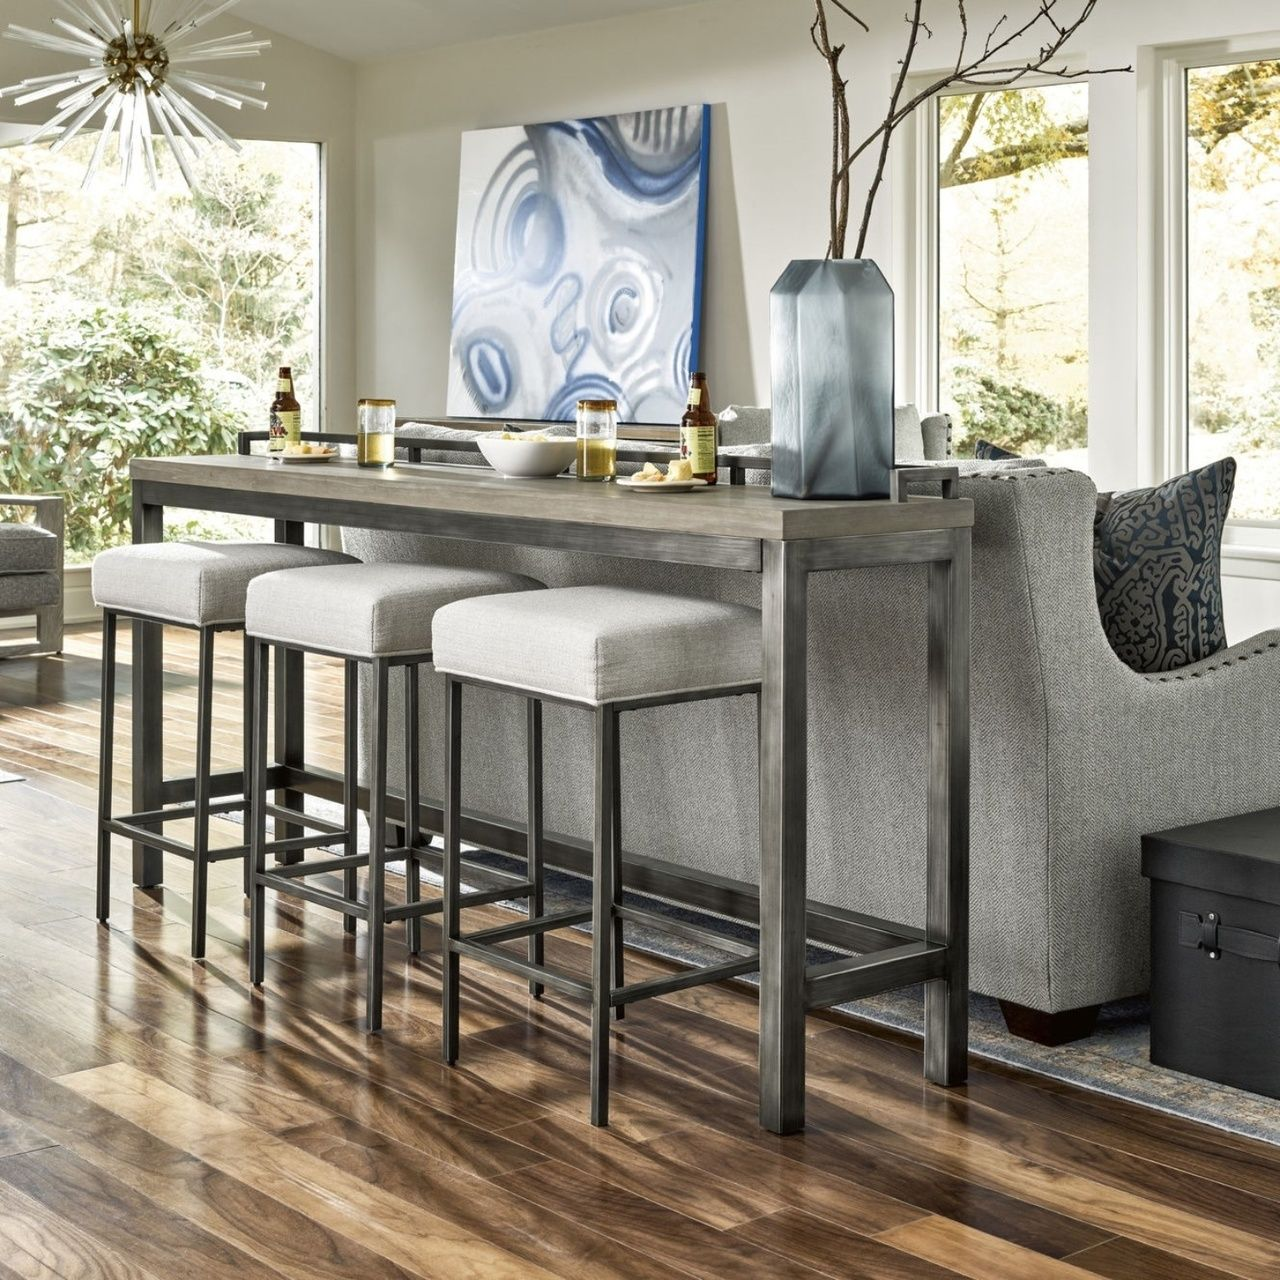 Mitchell 4 Pc Counter Height Table Set Bar Table Behind Couch Table Behind Couch Home Decor